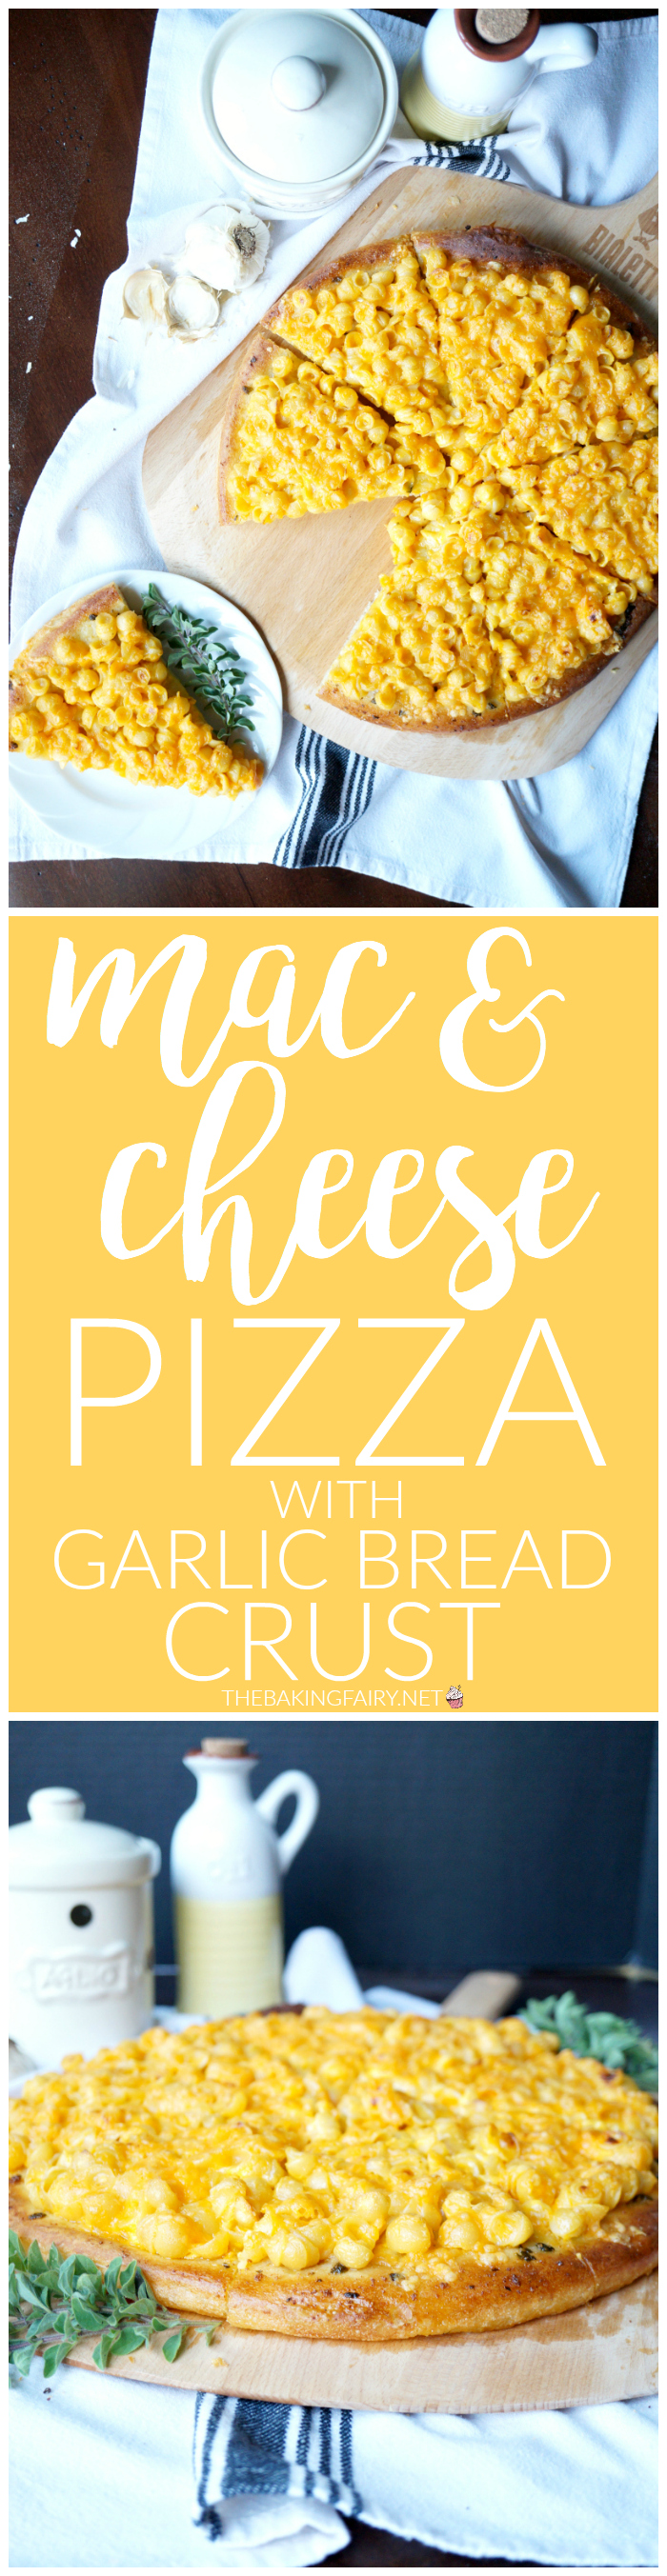 mac & cheese pizza with garlic bread crust | The Baking Fairy